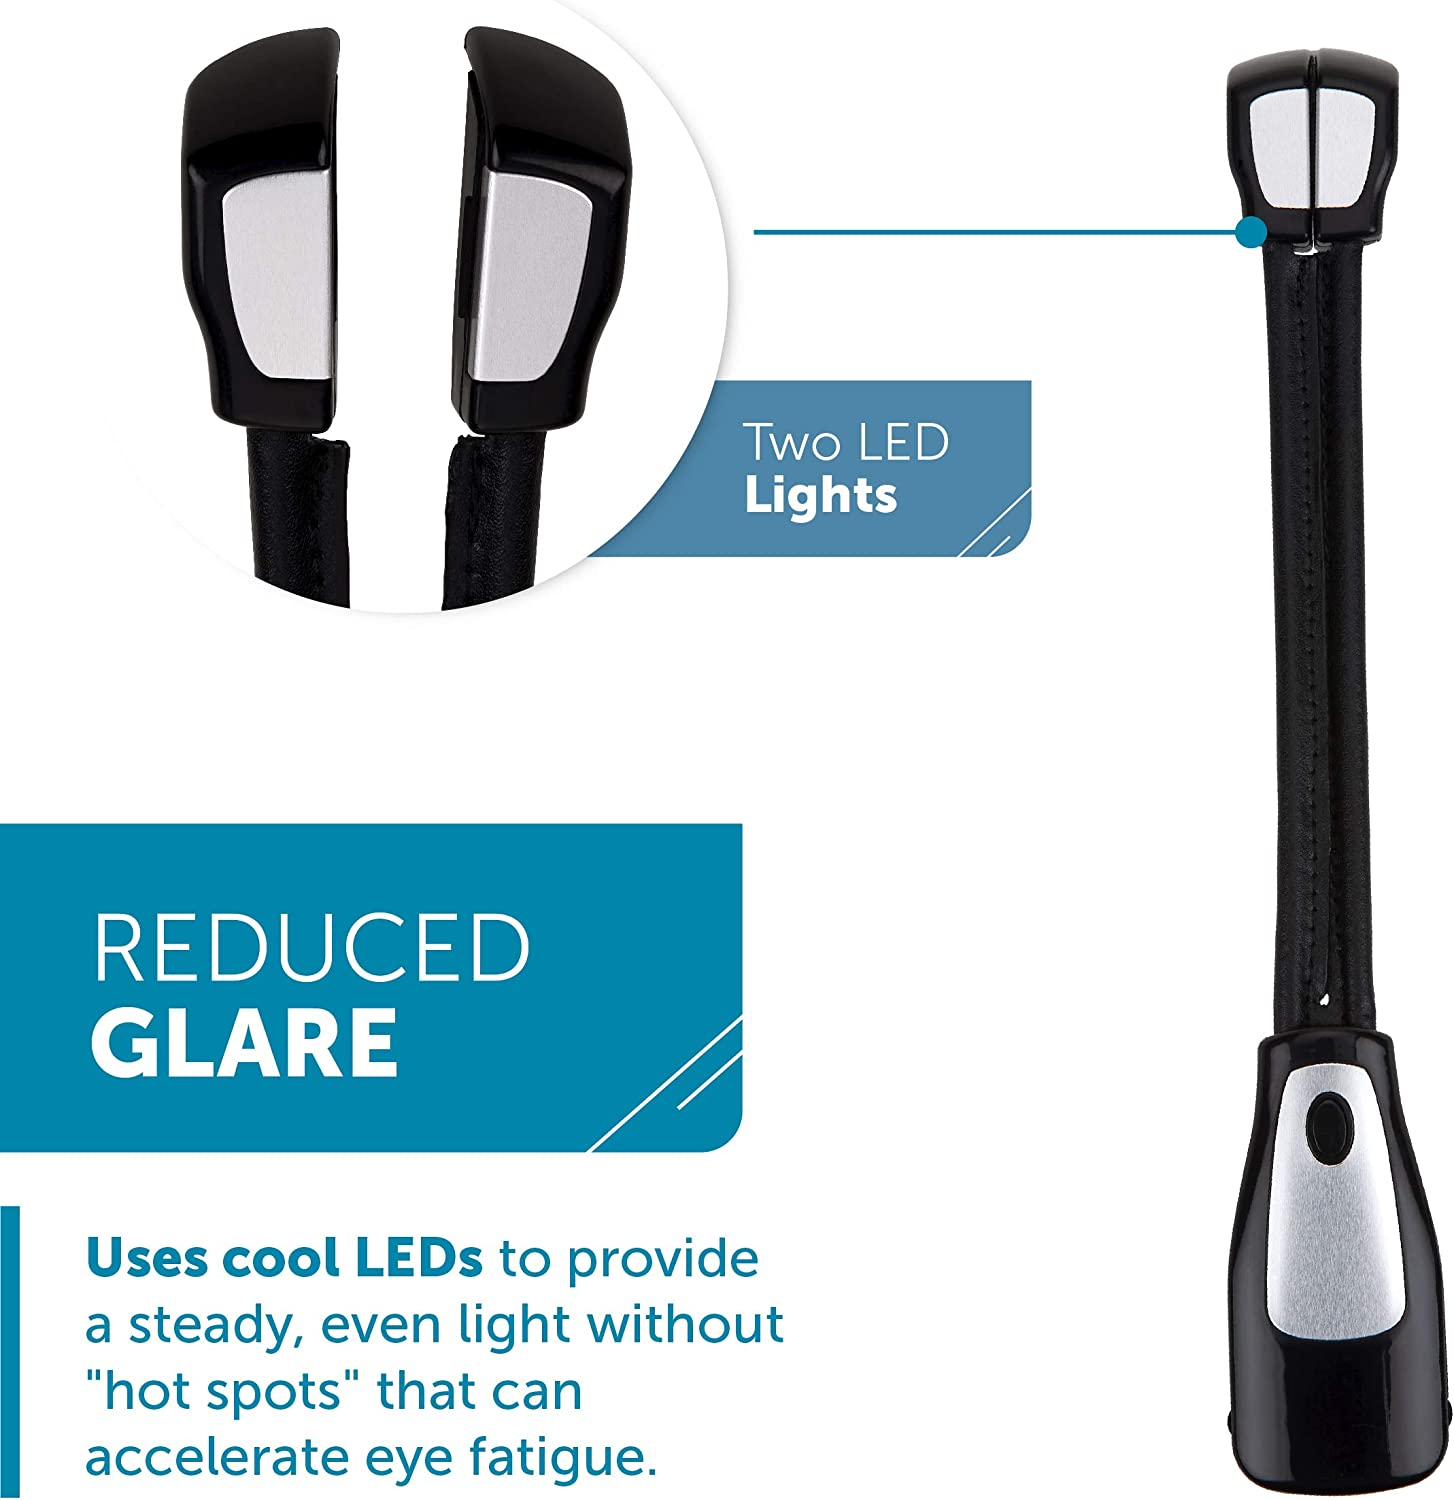 Black Portable Dual Head LED Reading Light with Clip for Books and eBooks Adults Lightweight Bookmark Light for Kids Reduced Glare WITHit Clip On Duo Reading Light